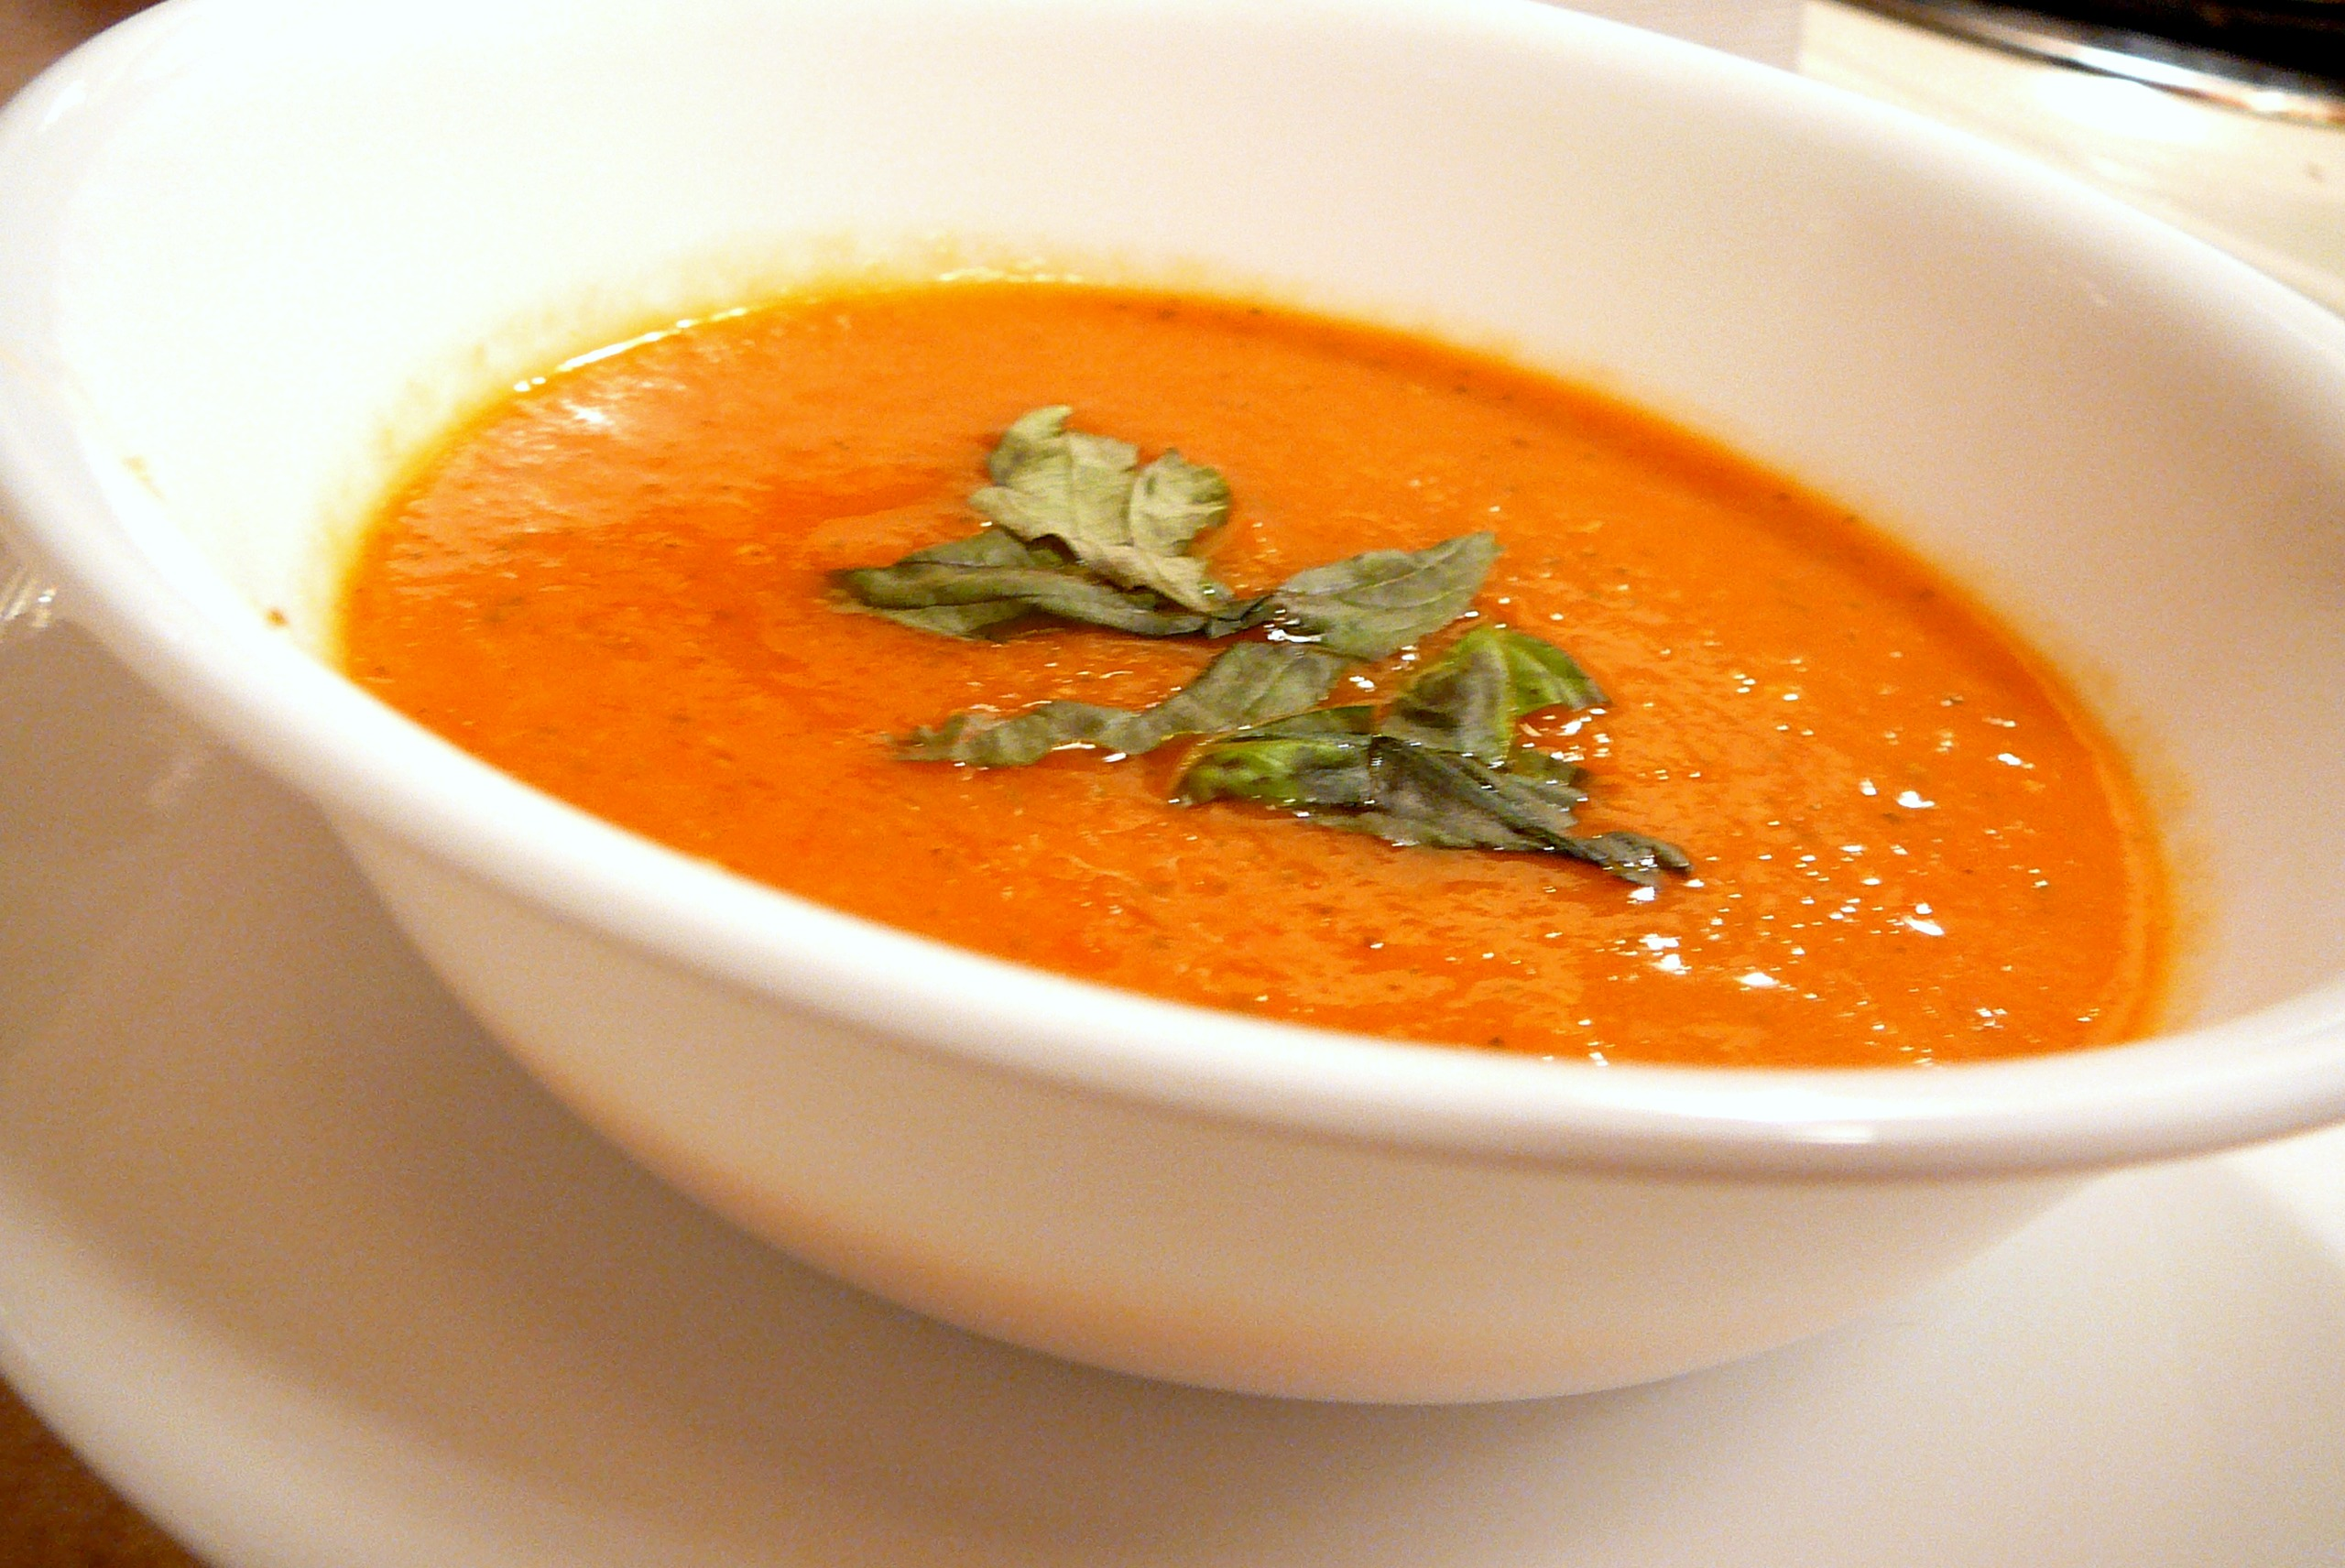 http://recipegreat.com/images/so-simple-i-can-make-it----vegetable-soup-04.jpg